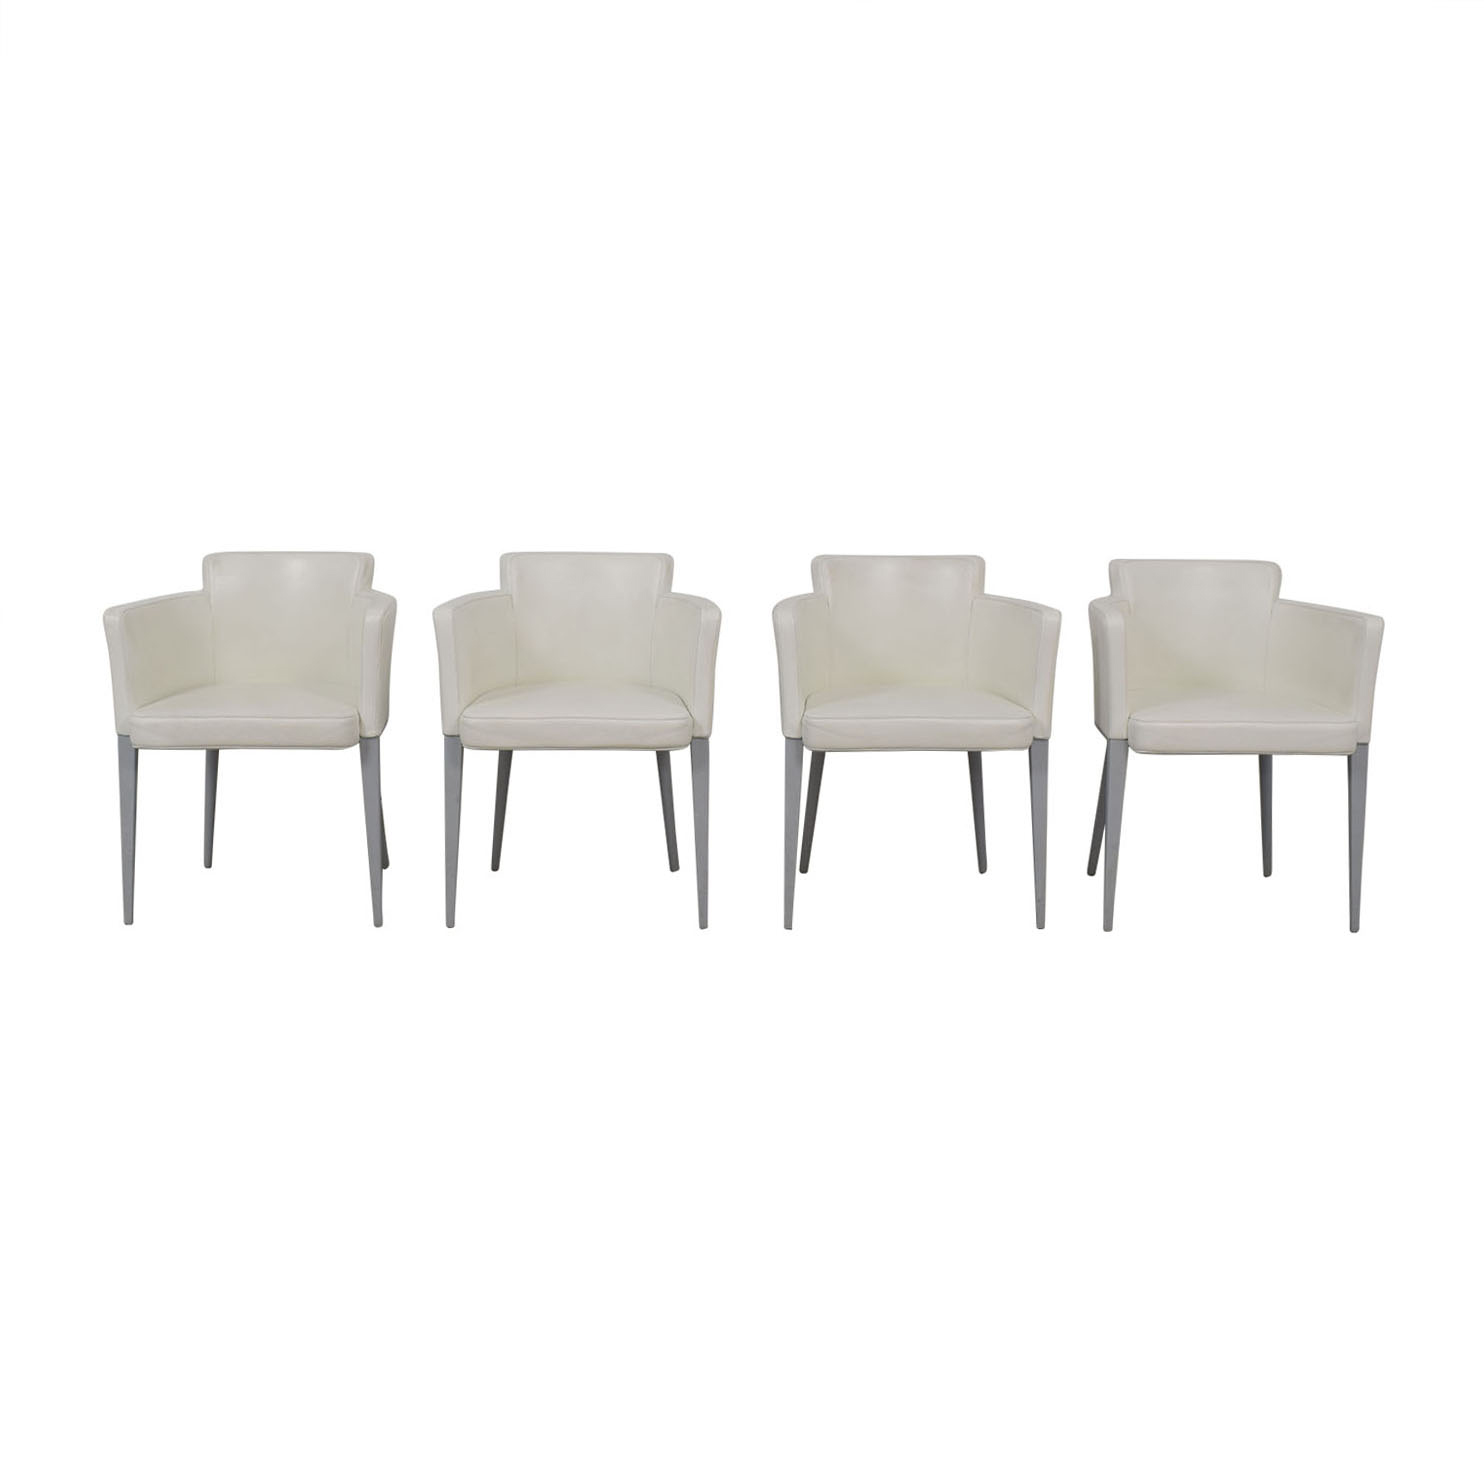 Cassina Cassina Ariane White Dining Chairs on sale